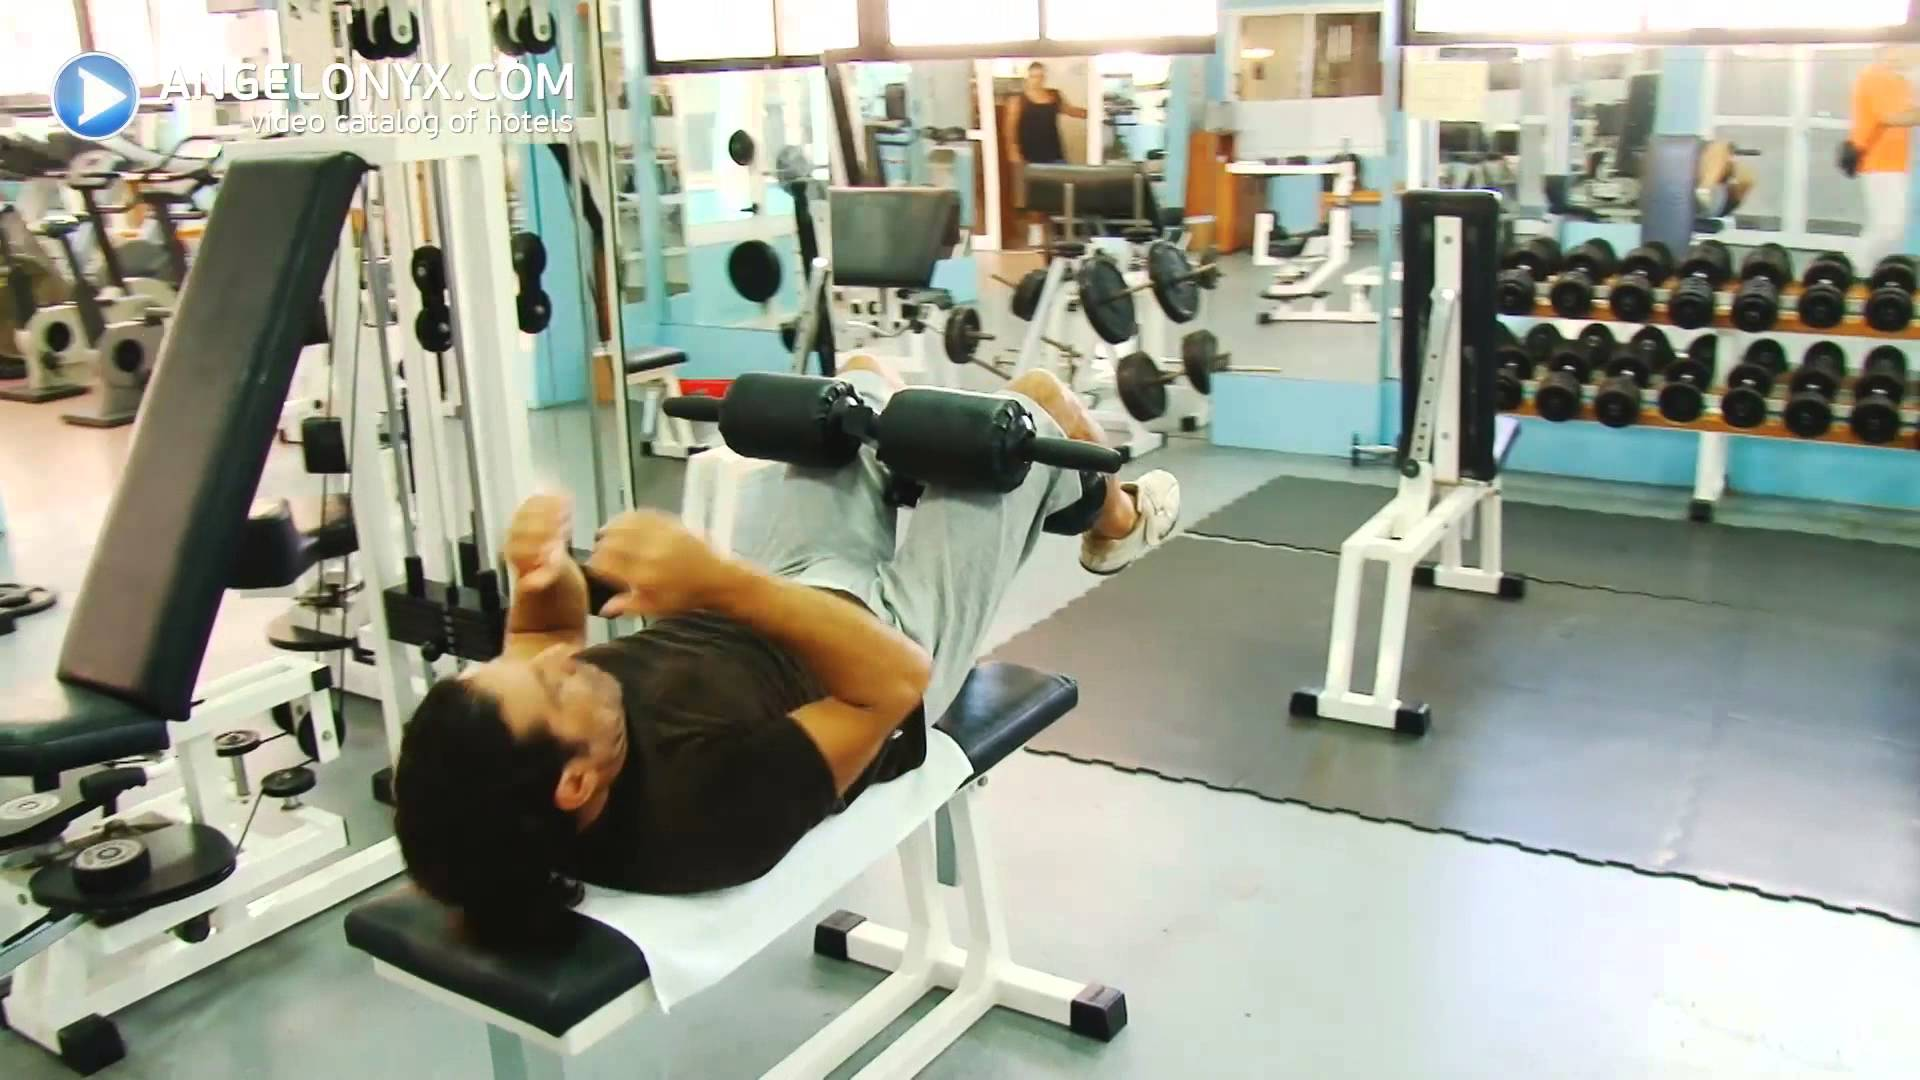 The Great Hotel Gyms